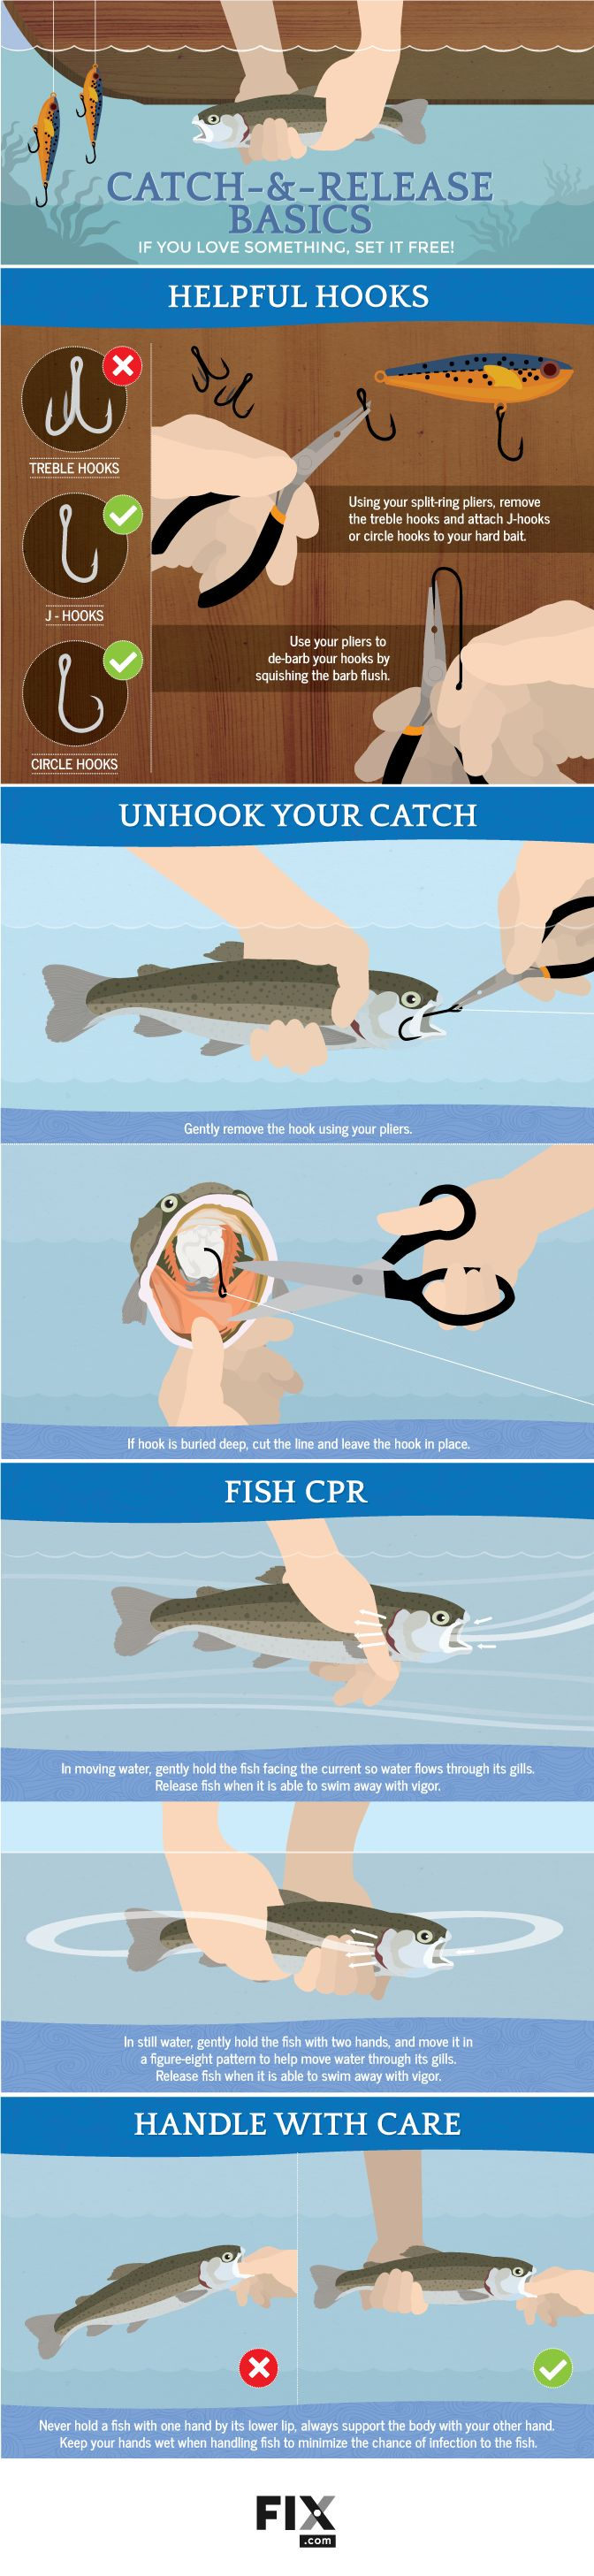 Guide to Catch-and-Release Fishing  #infographic #Fishing